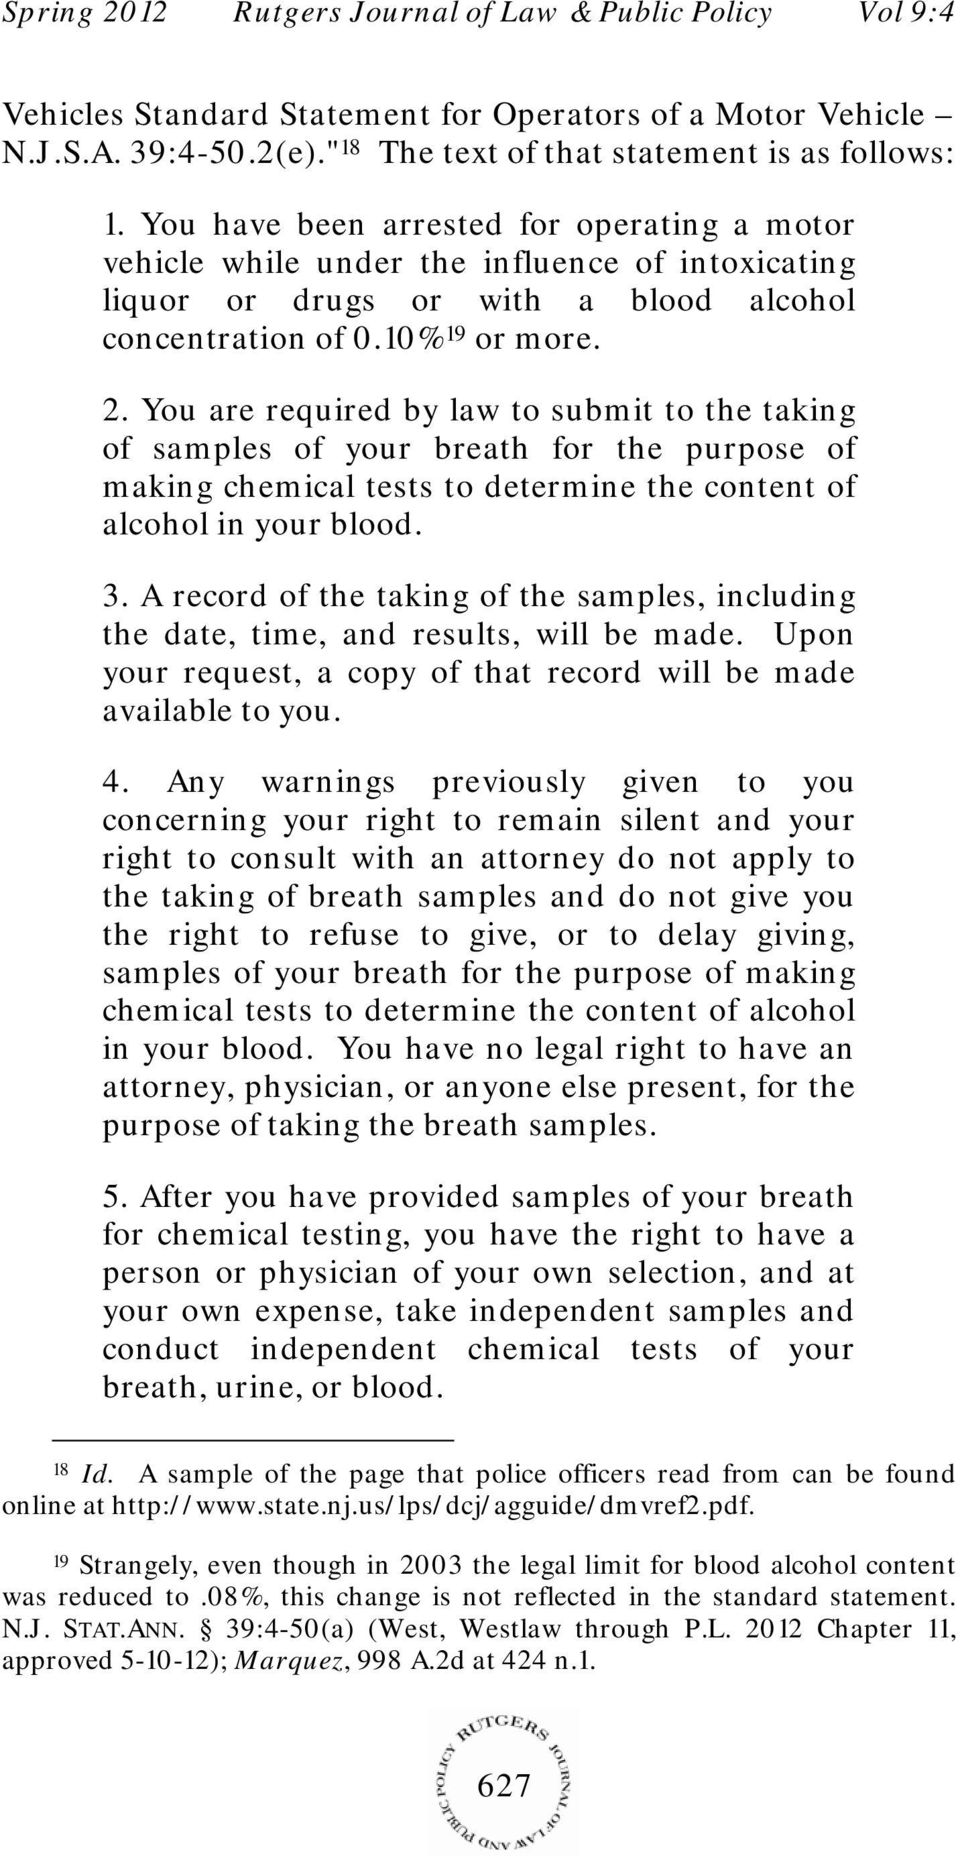 You are required by law to submit to the taking of samples of your breath for the purpose of making chemical tests to determine the content of alcohol in your blood. 3.